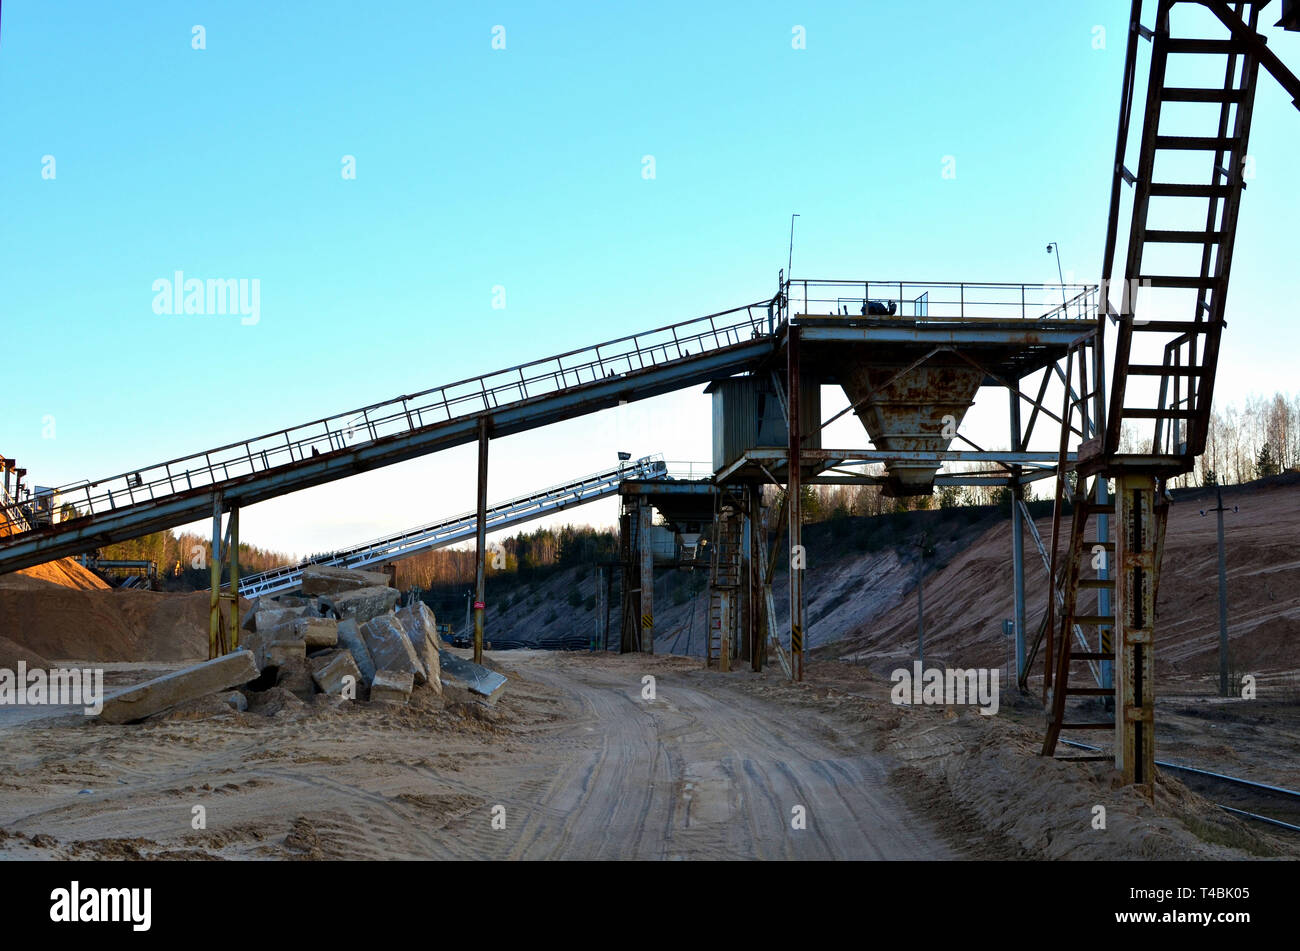 Mining quarry for the production of crushed stone, sand and gravel